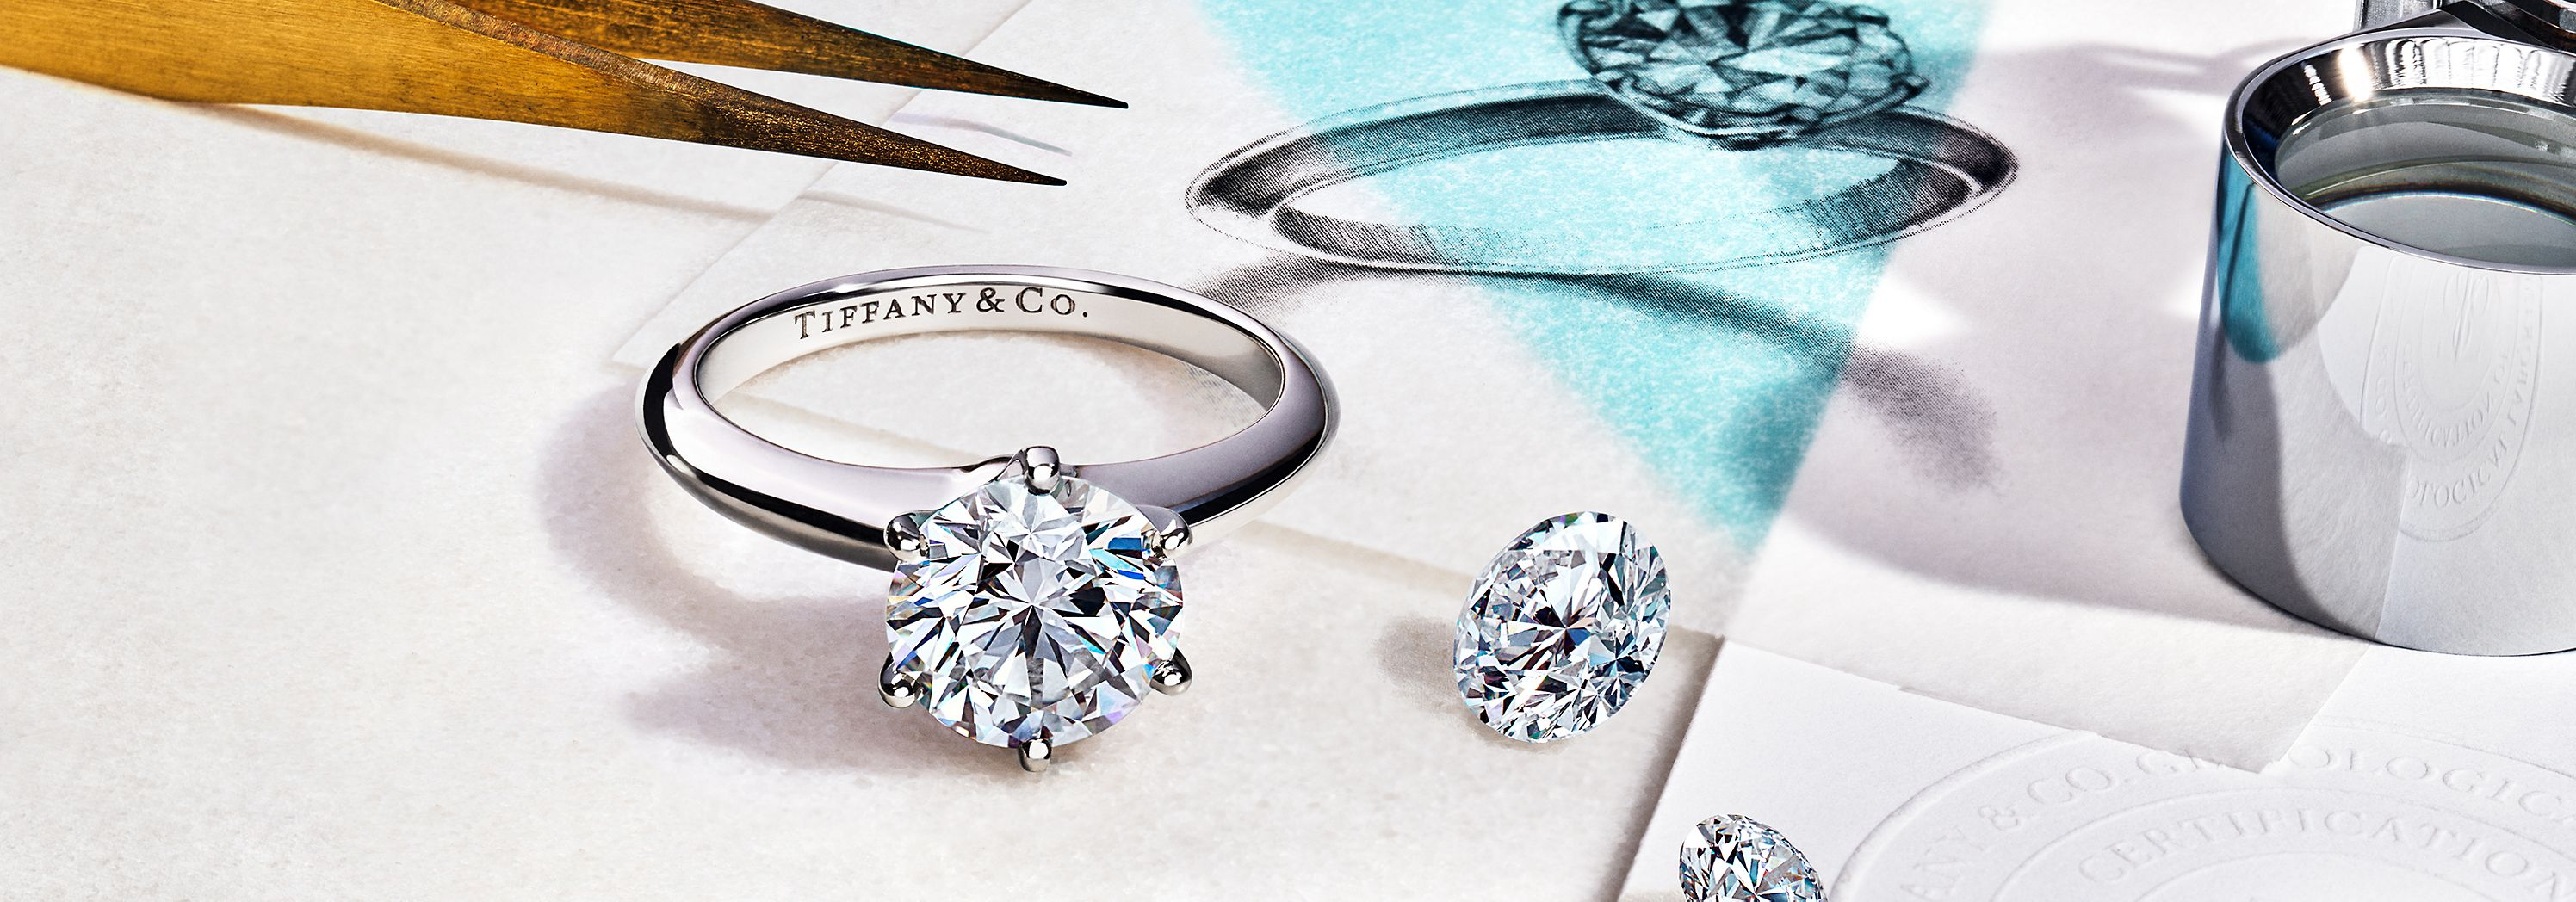 Tiffany® Setting 鉑金訂情戒指